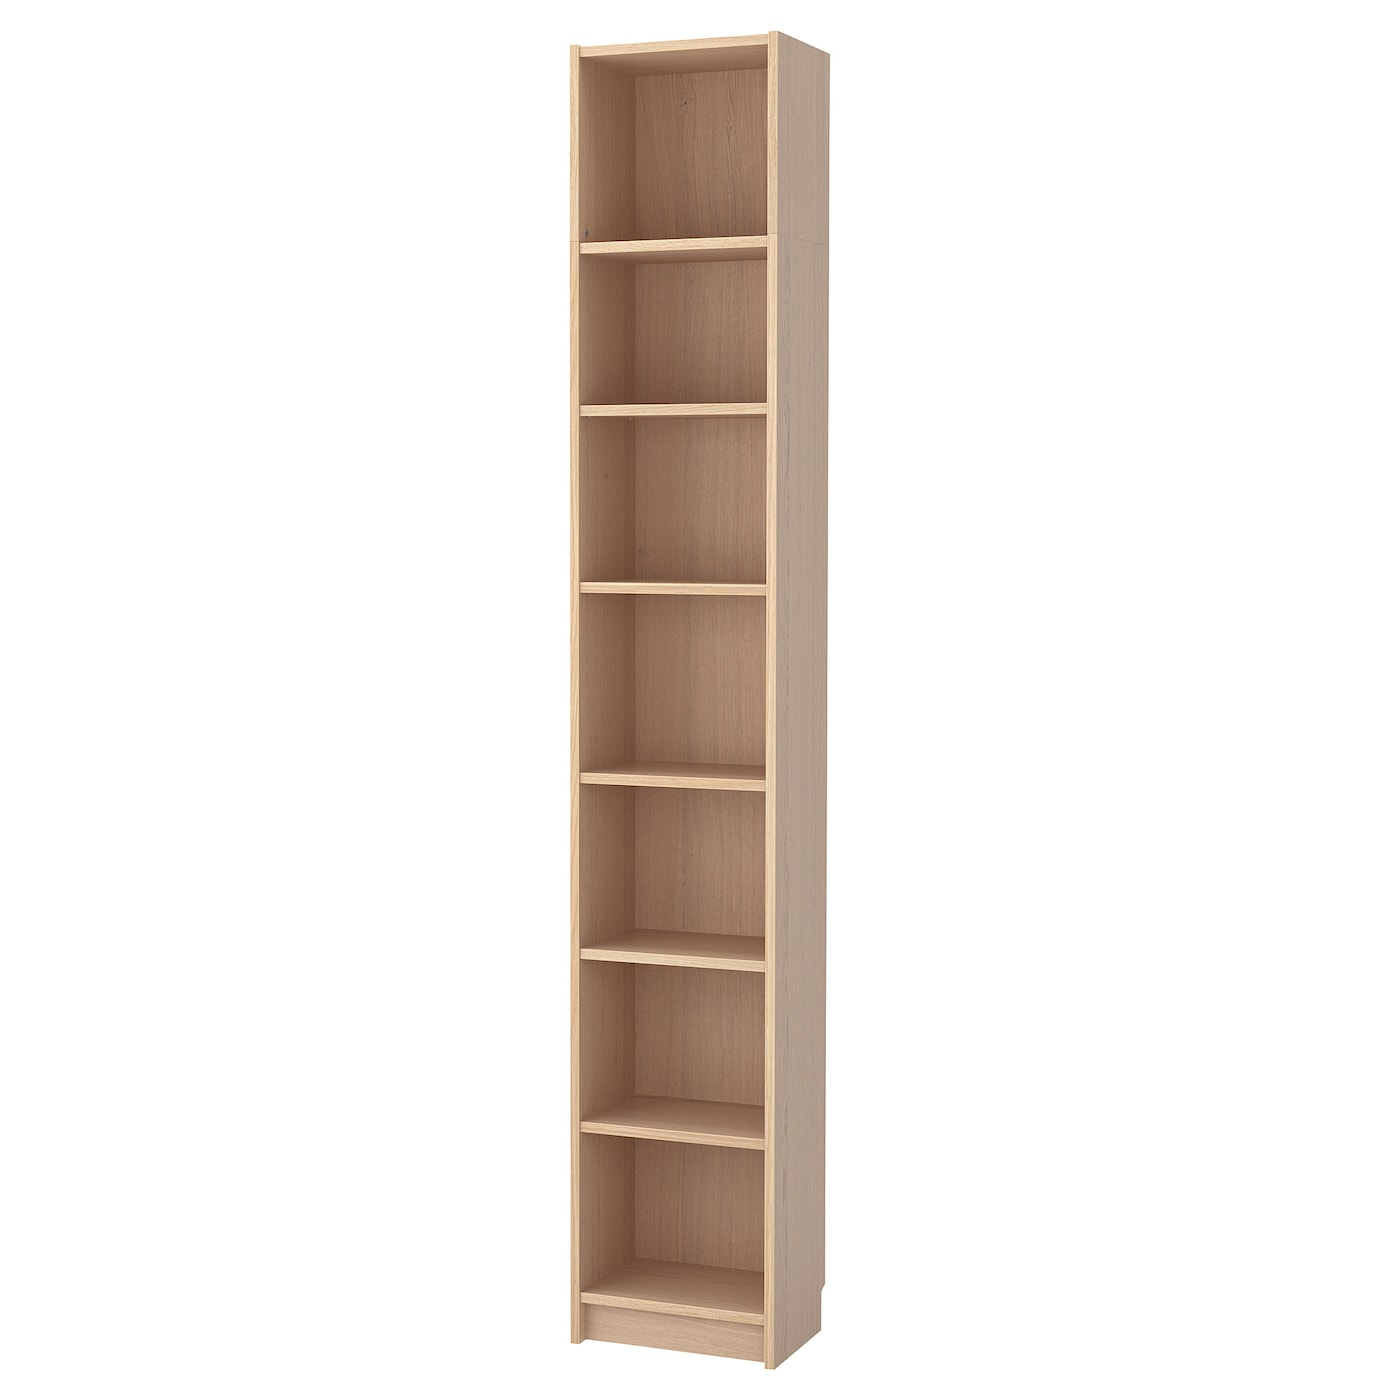 Ikea Billy Bookcase With Height Extension Unit Surface Made From Natural Wood Veneer